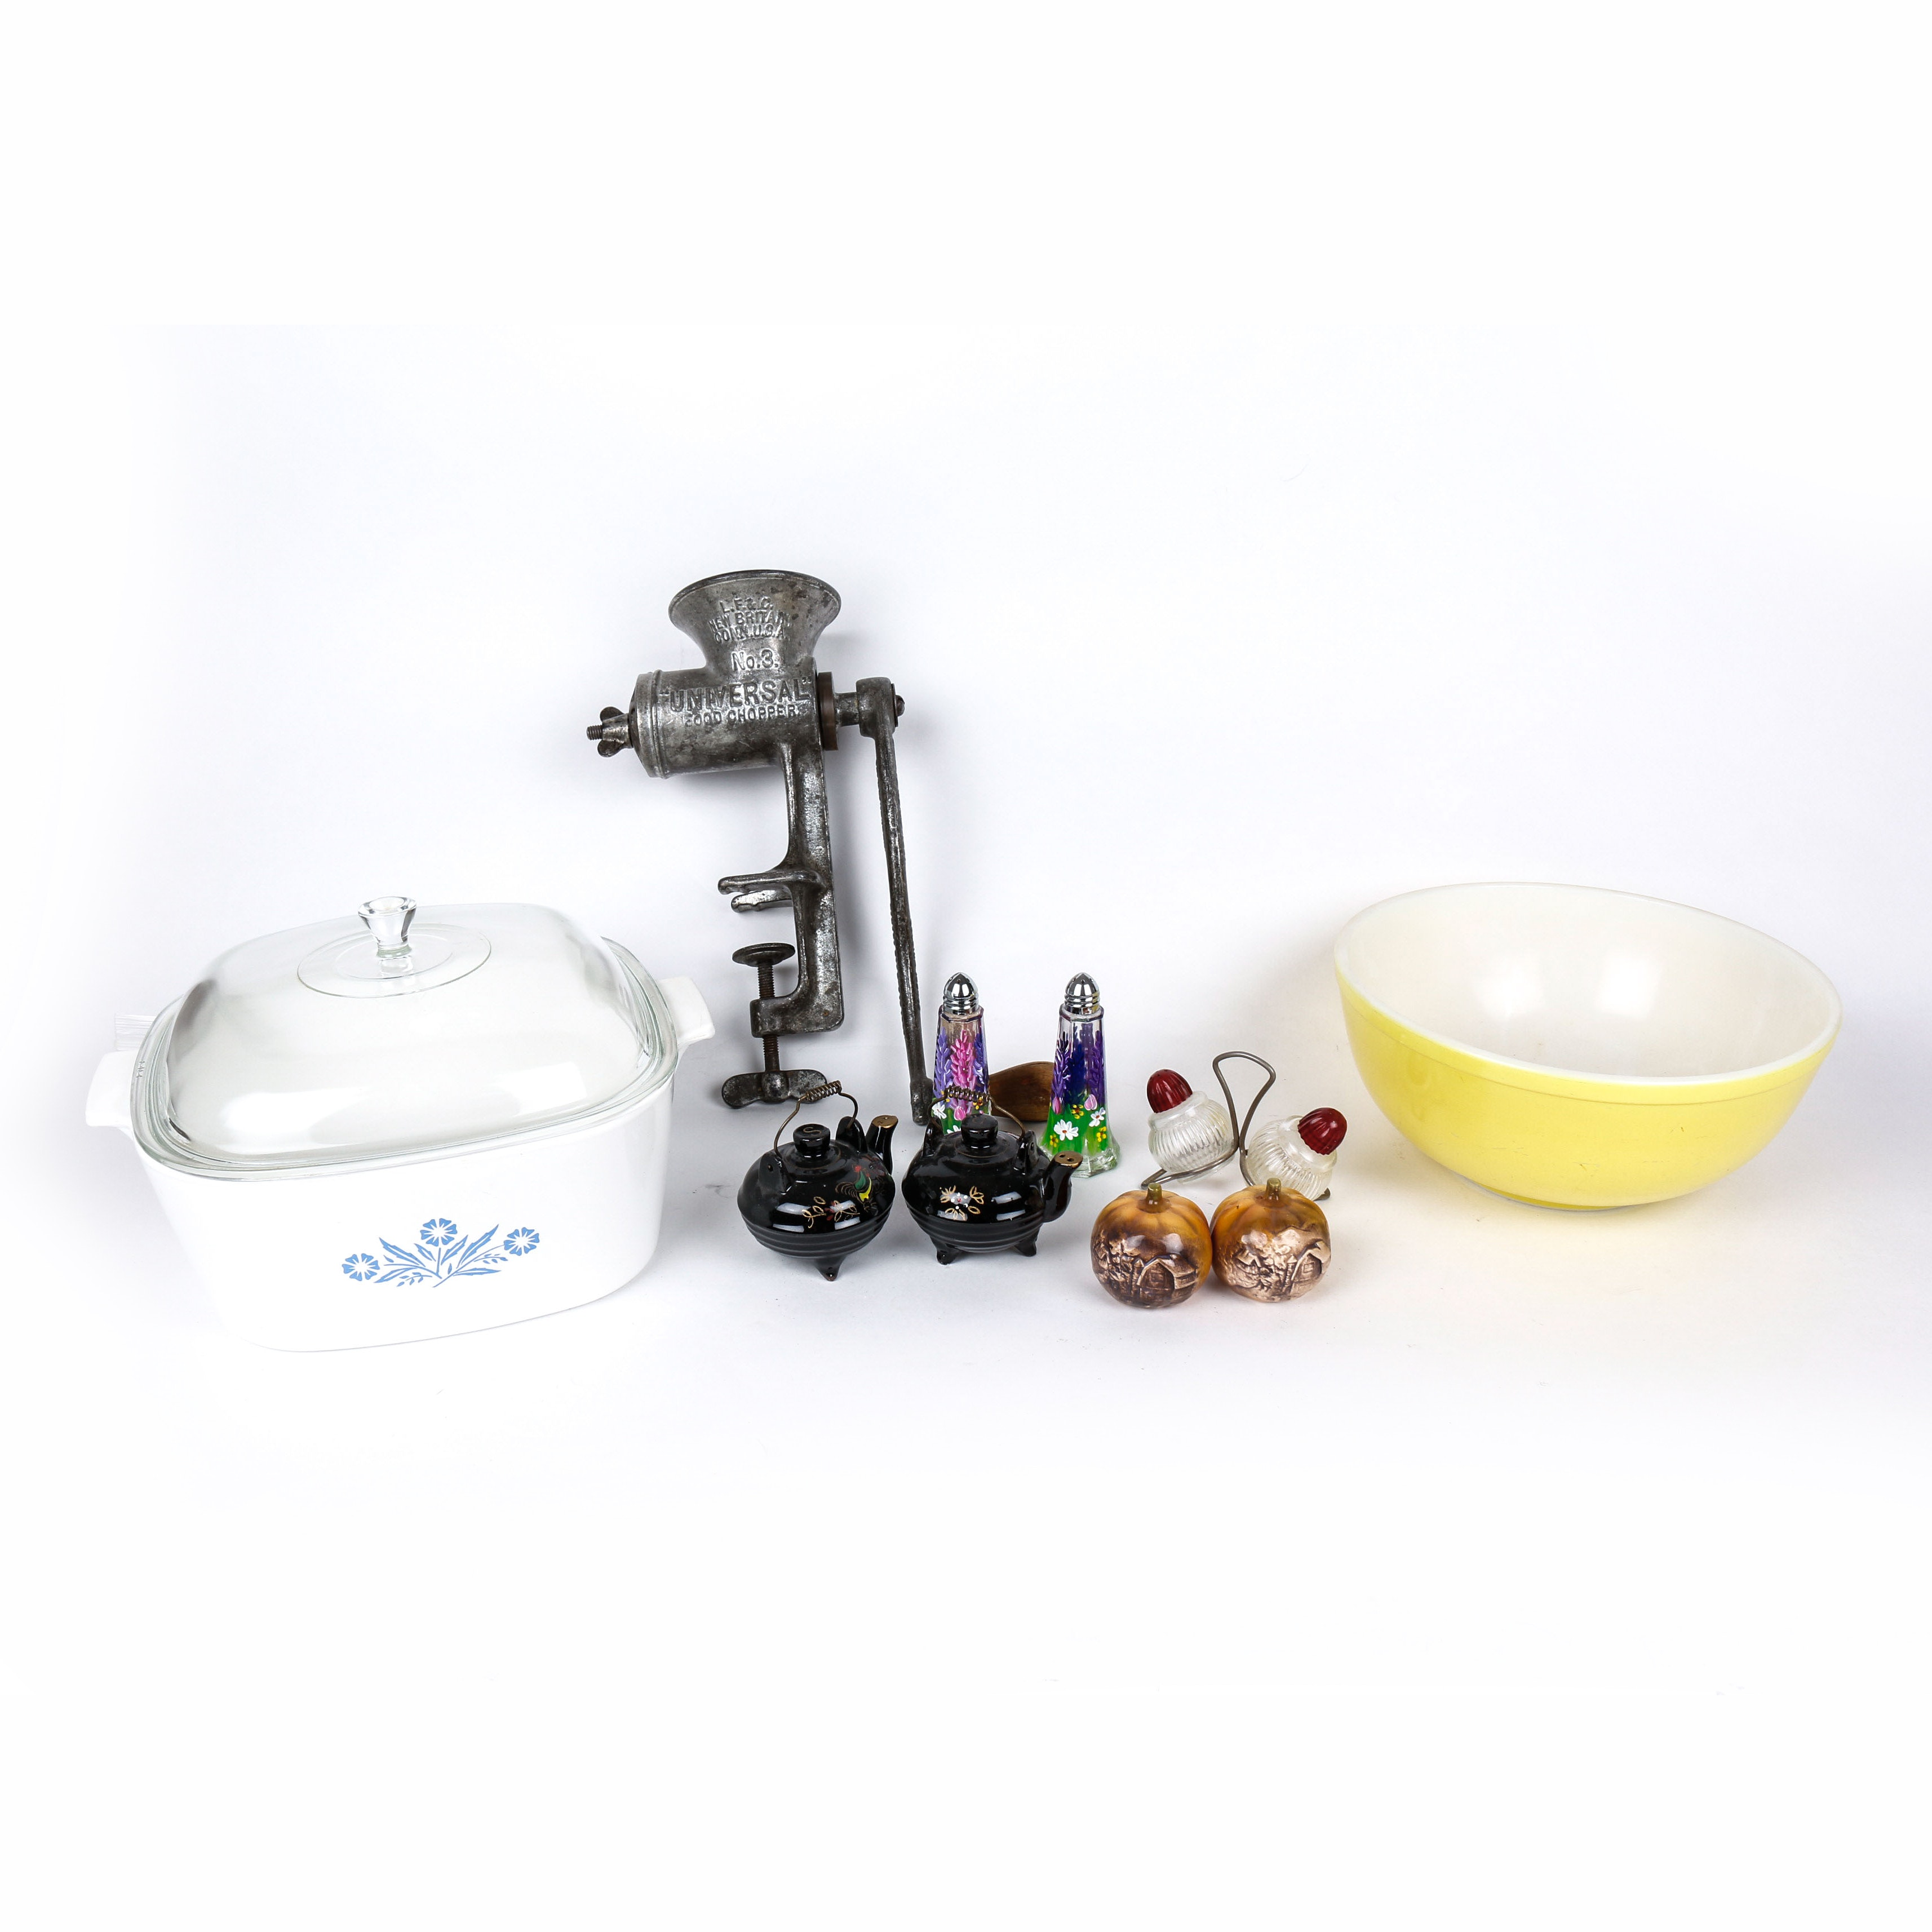 Collection of Vintage Kitchenwares